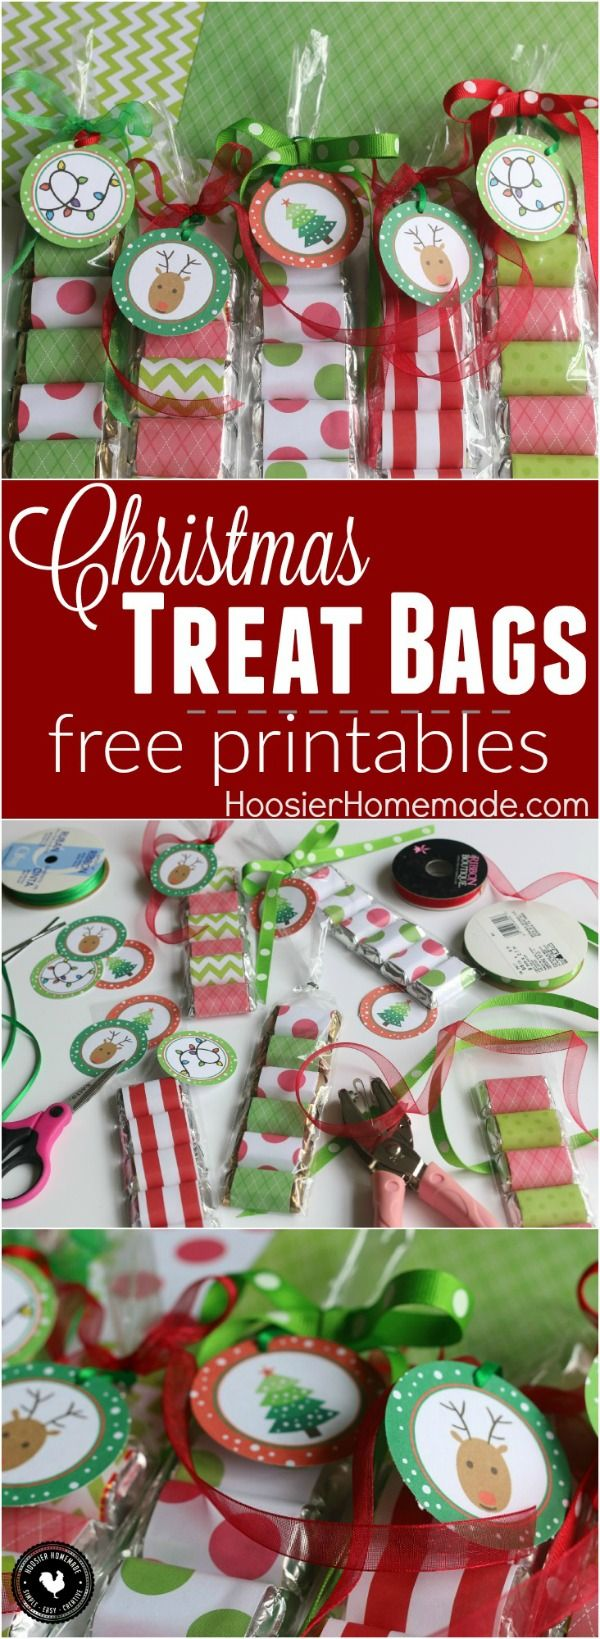 17 best ideas about christmas treat bags on pinterest christmas bags christmas candy gifts. Black Bedroom Furniture Sets. Home Design Ideas